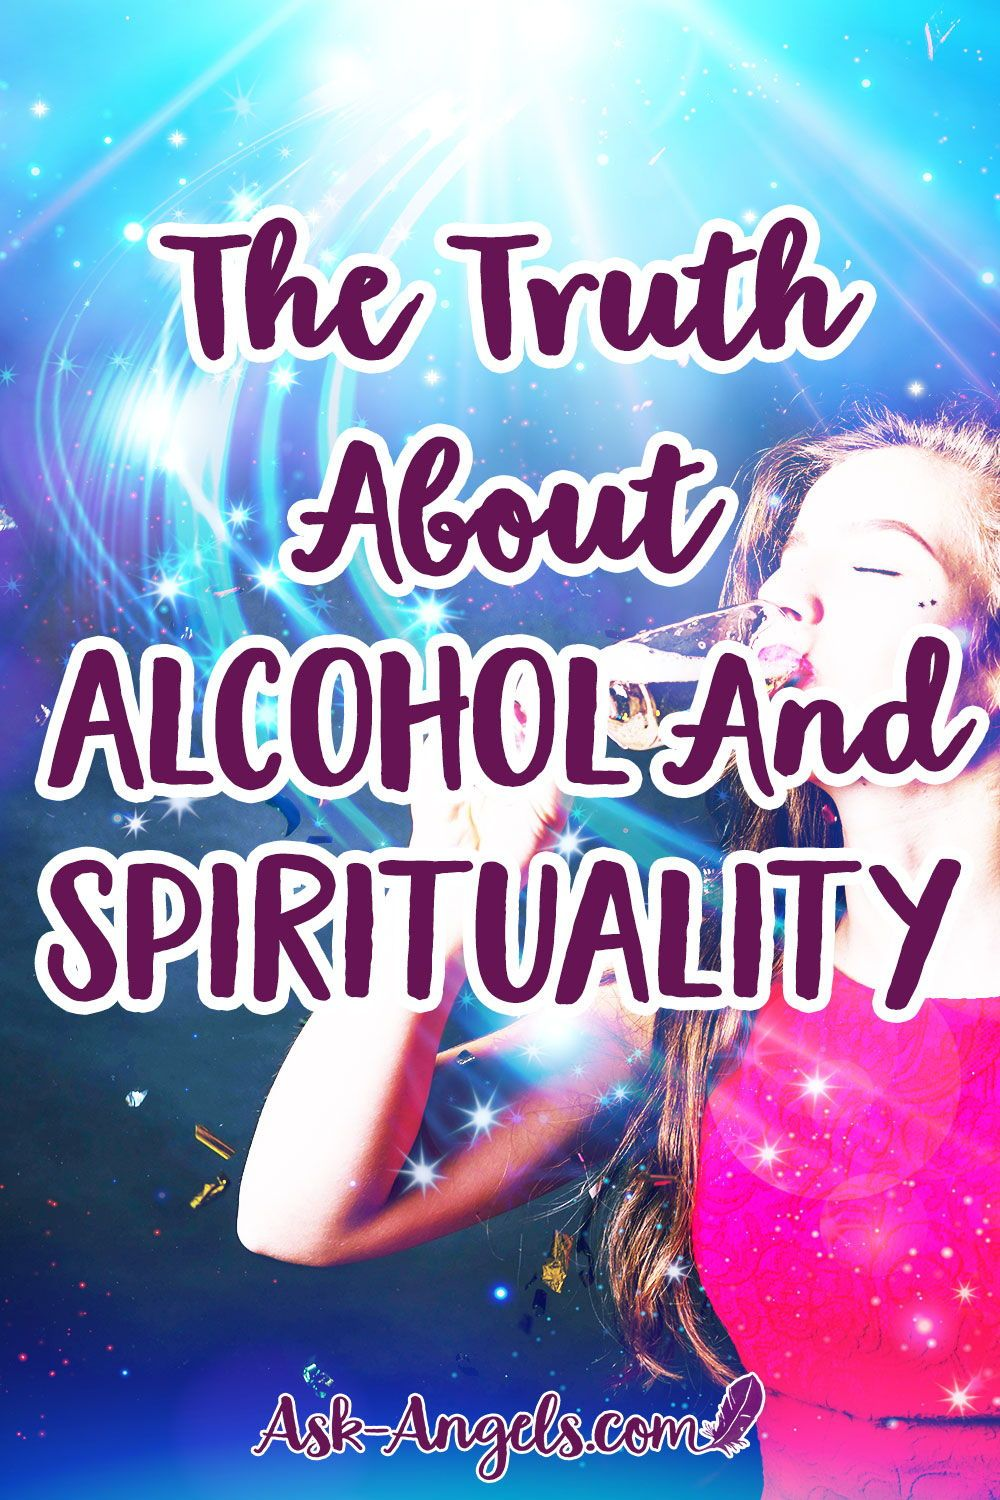 The Truth About Alcohol And Spirituality With Images